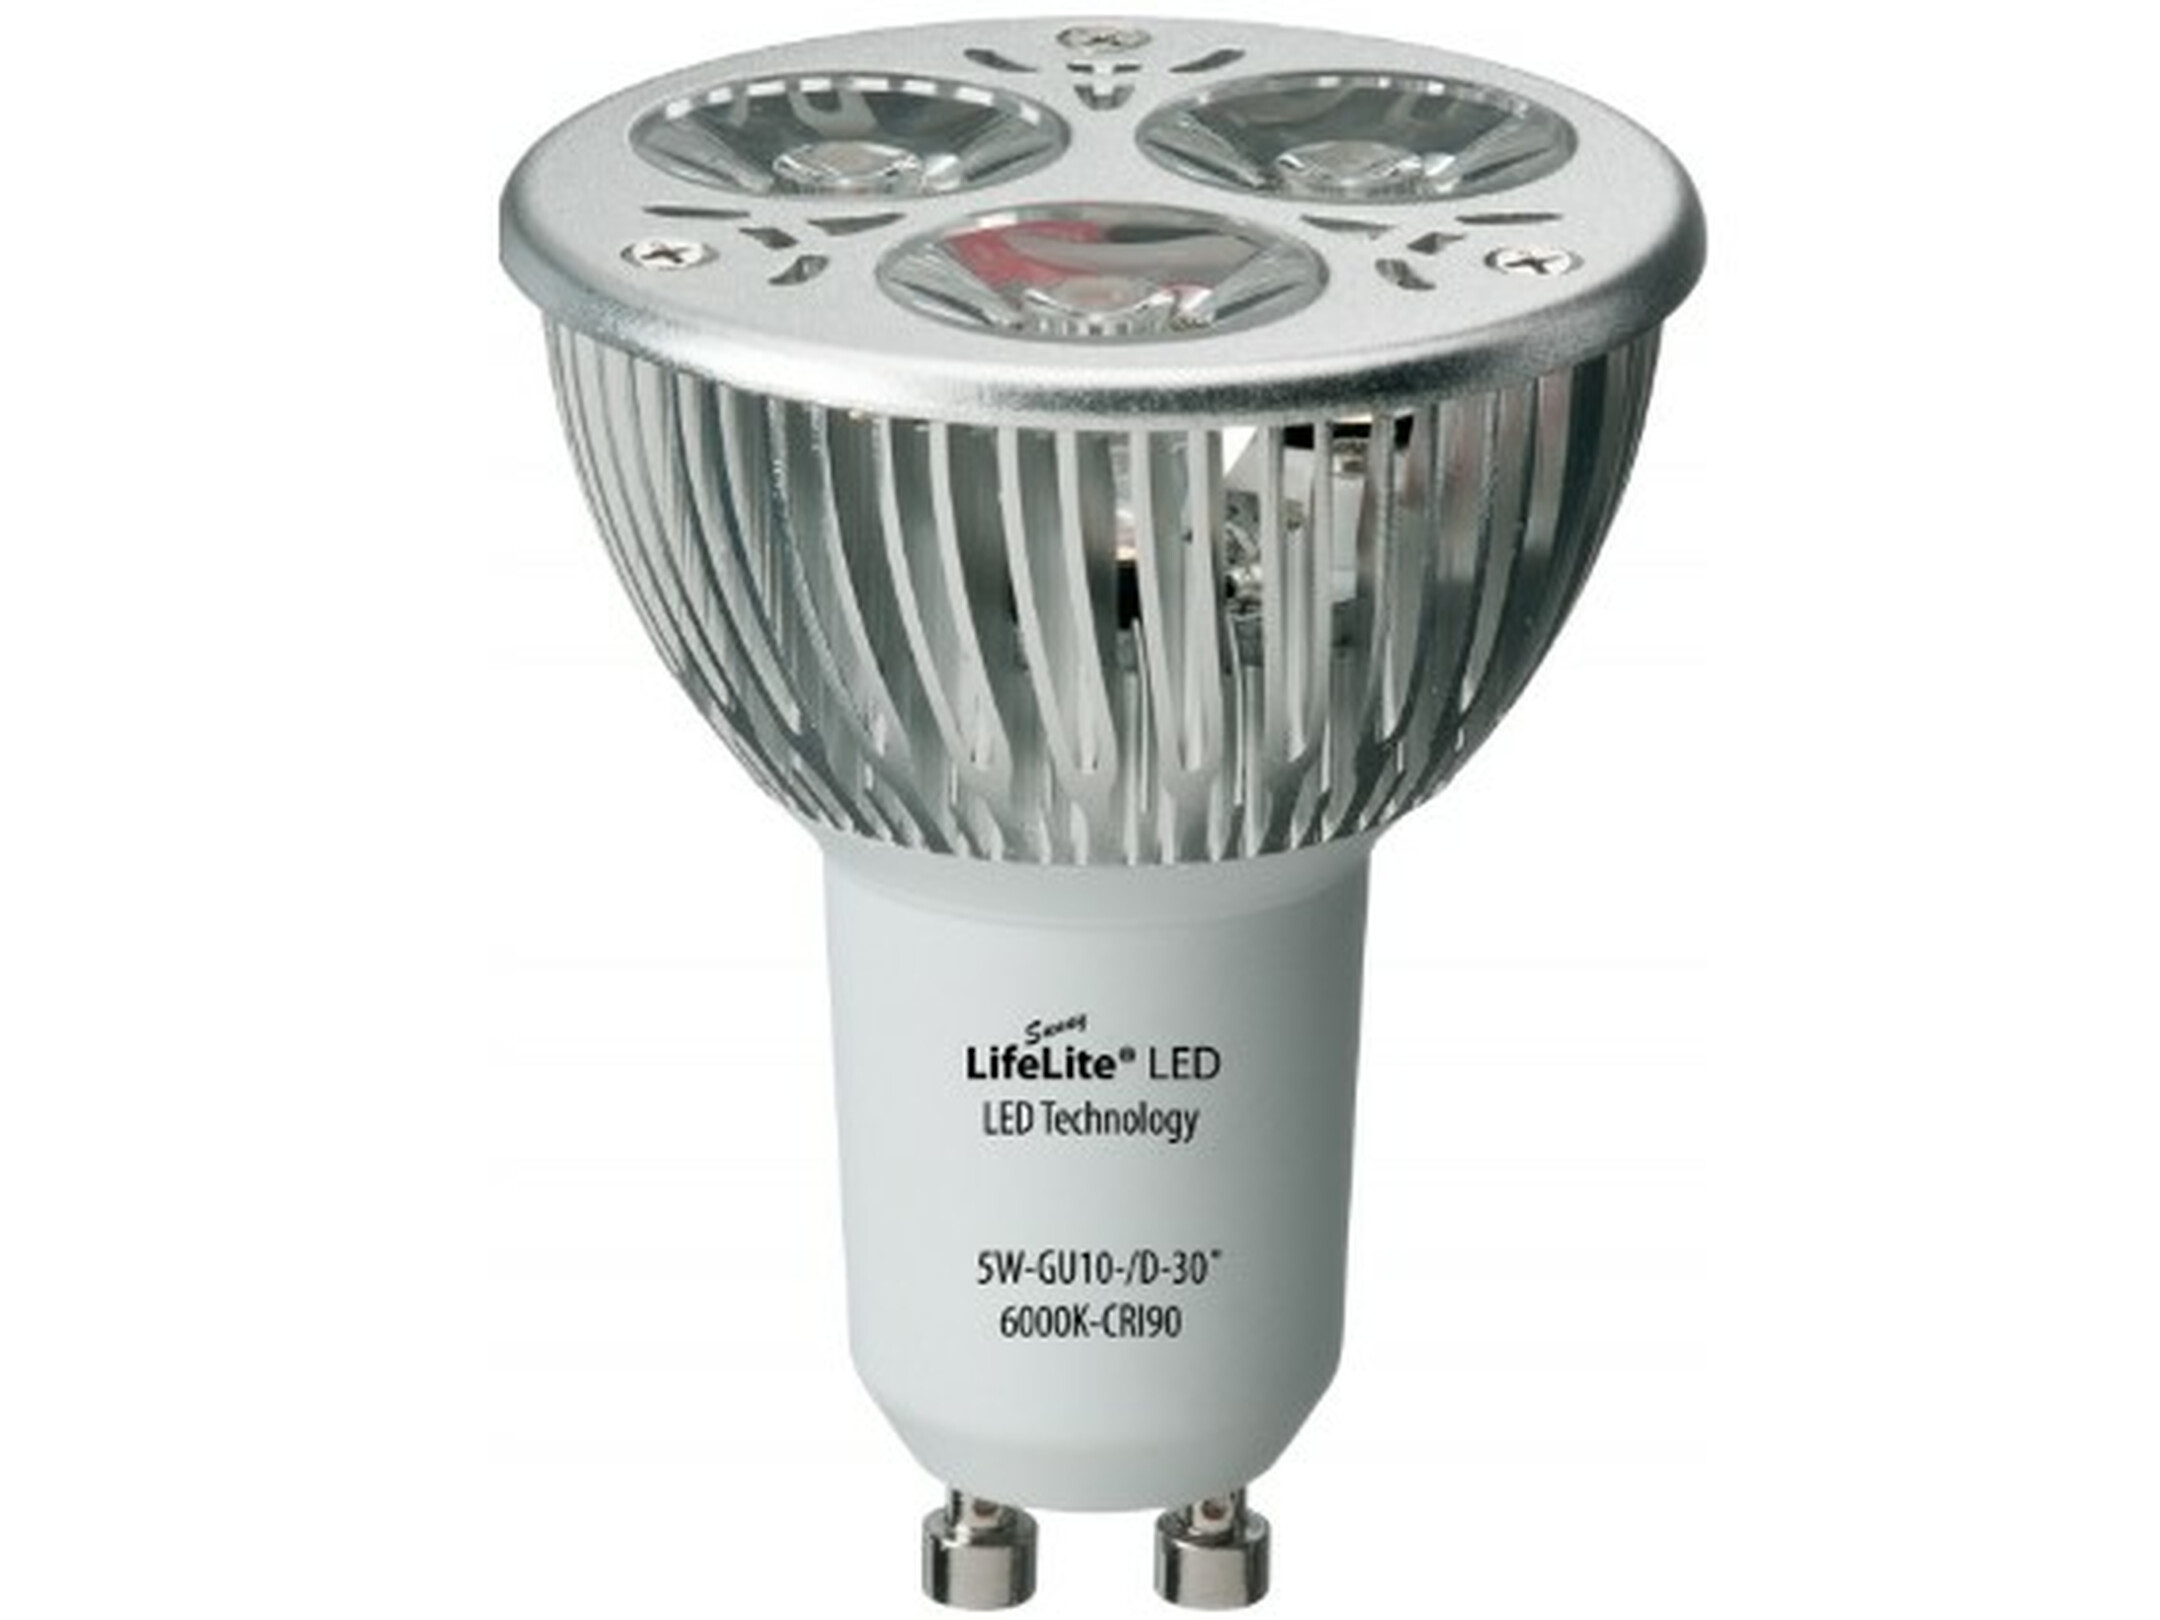 lledggu10_vollspektrum-led-warmweiss Schöne 3 5 Watt Led Entspricht Dekorationen